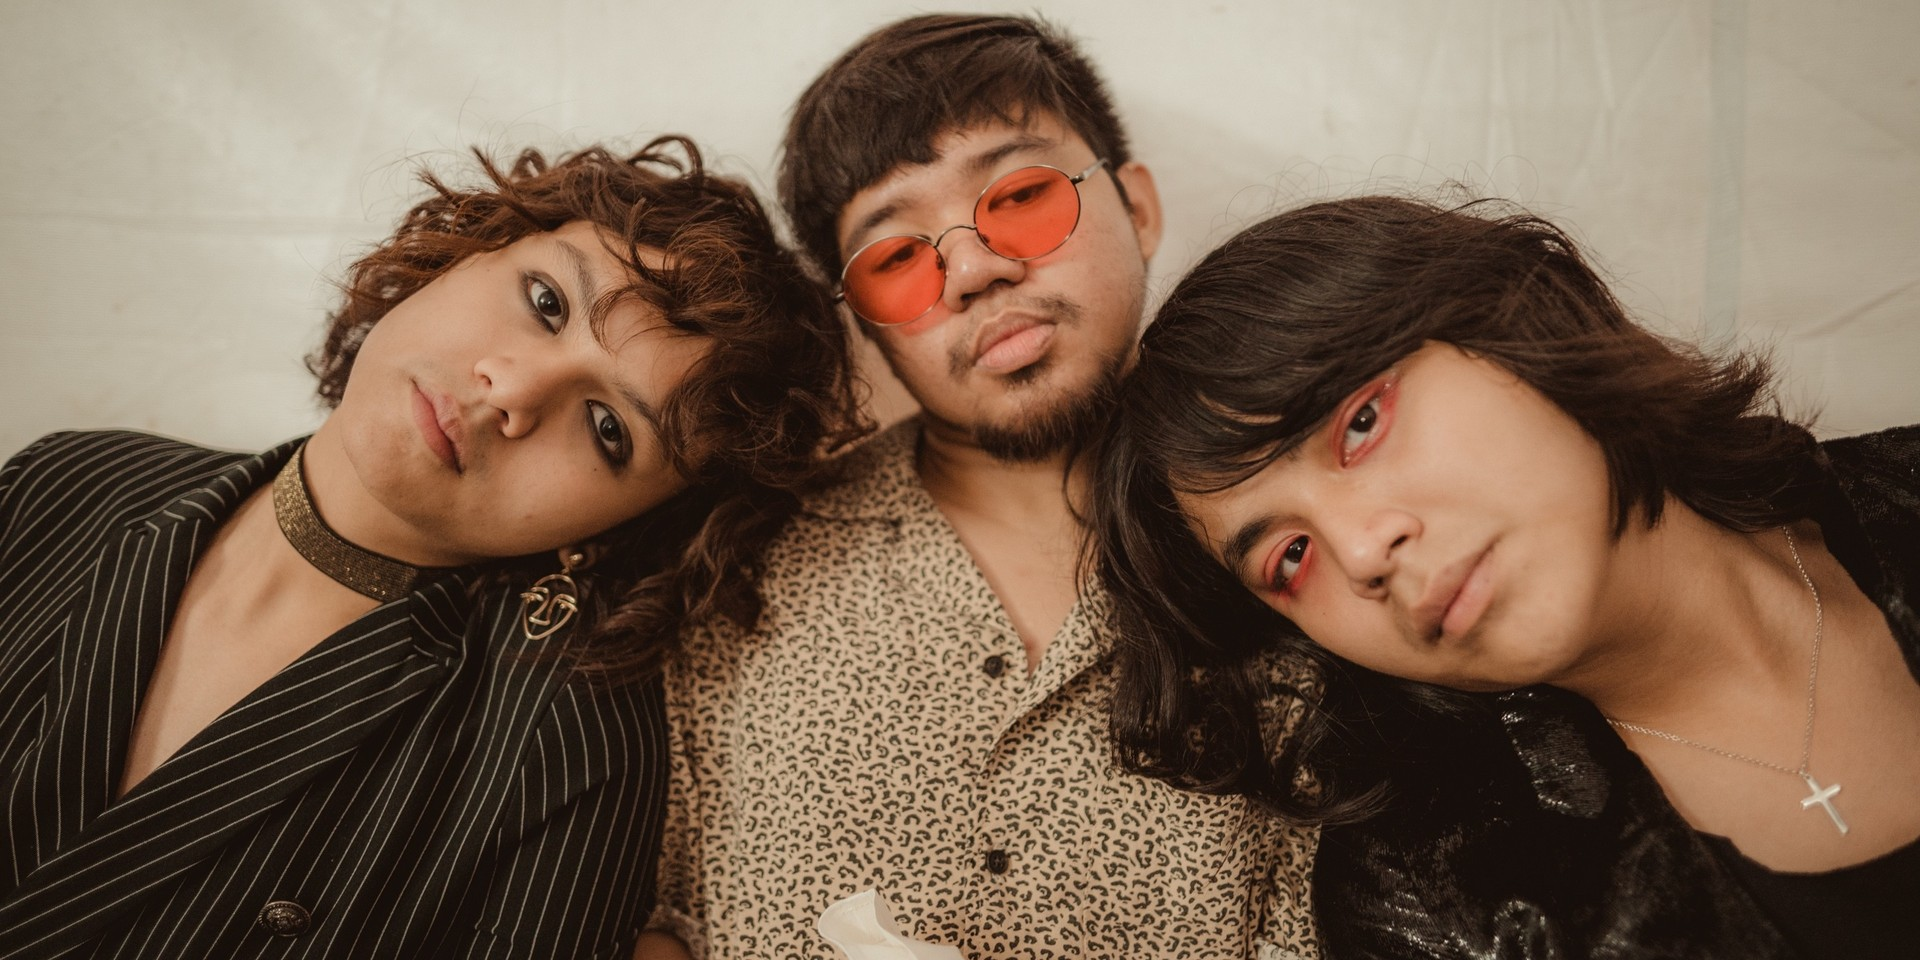 IV of Spades on performing live: It's not just about the music